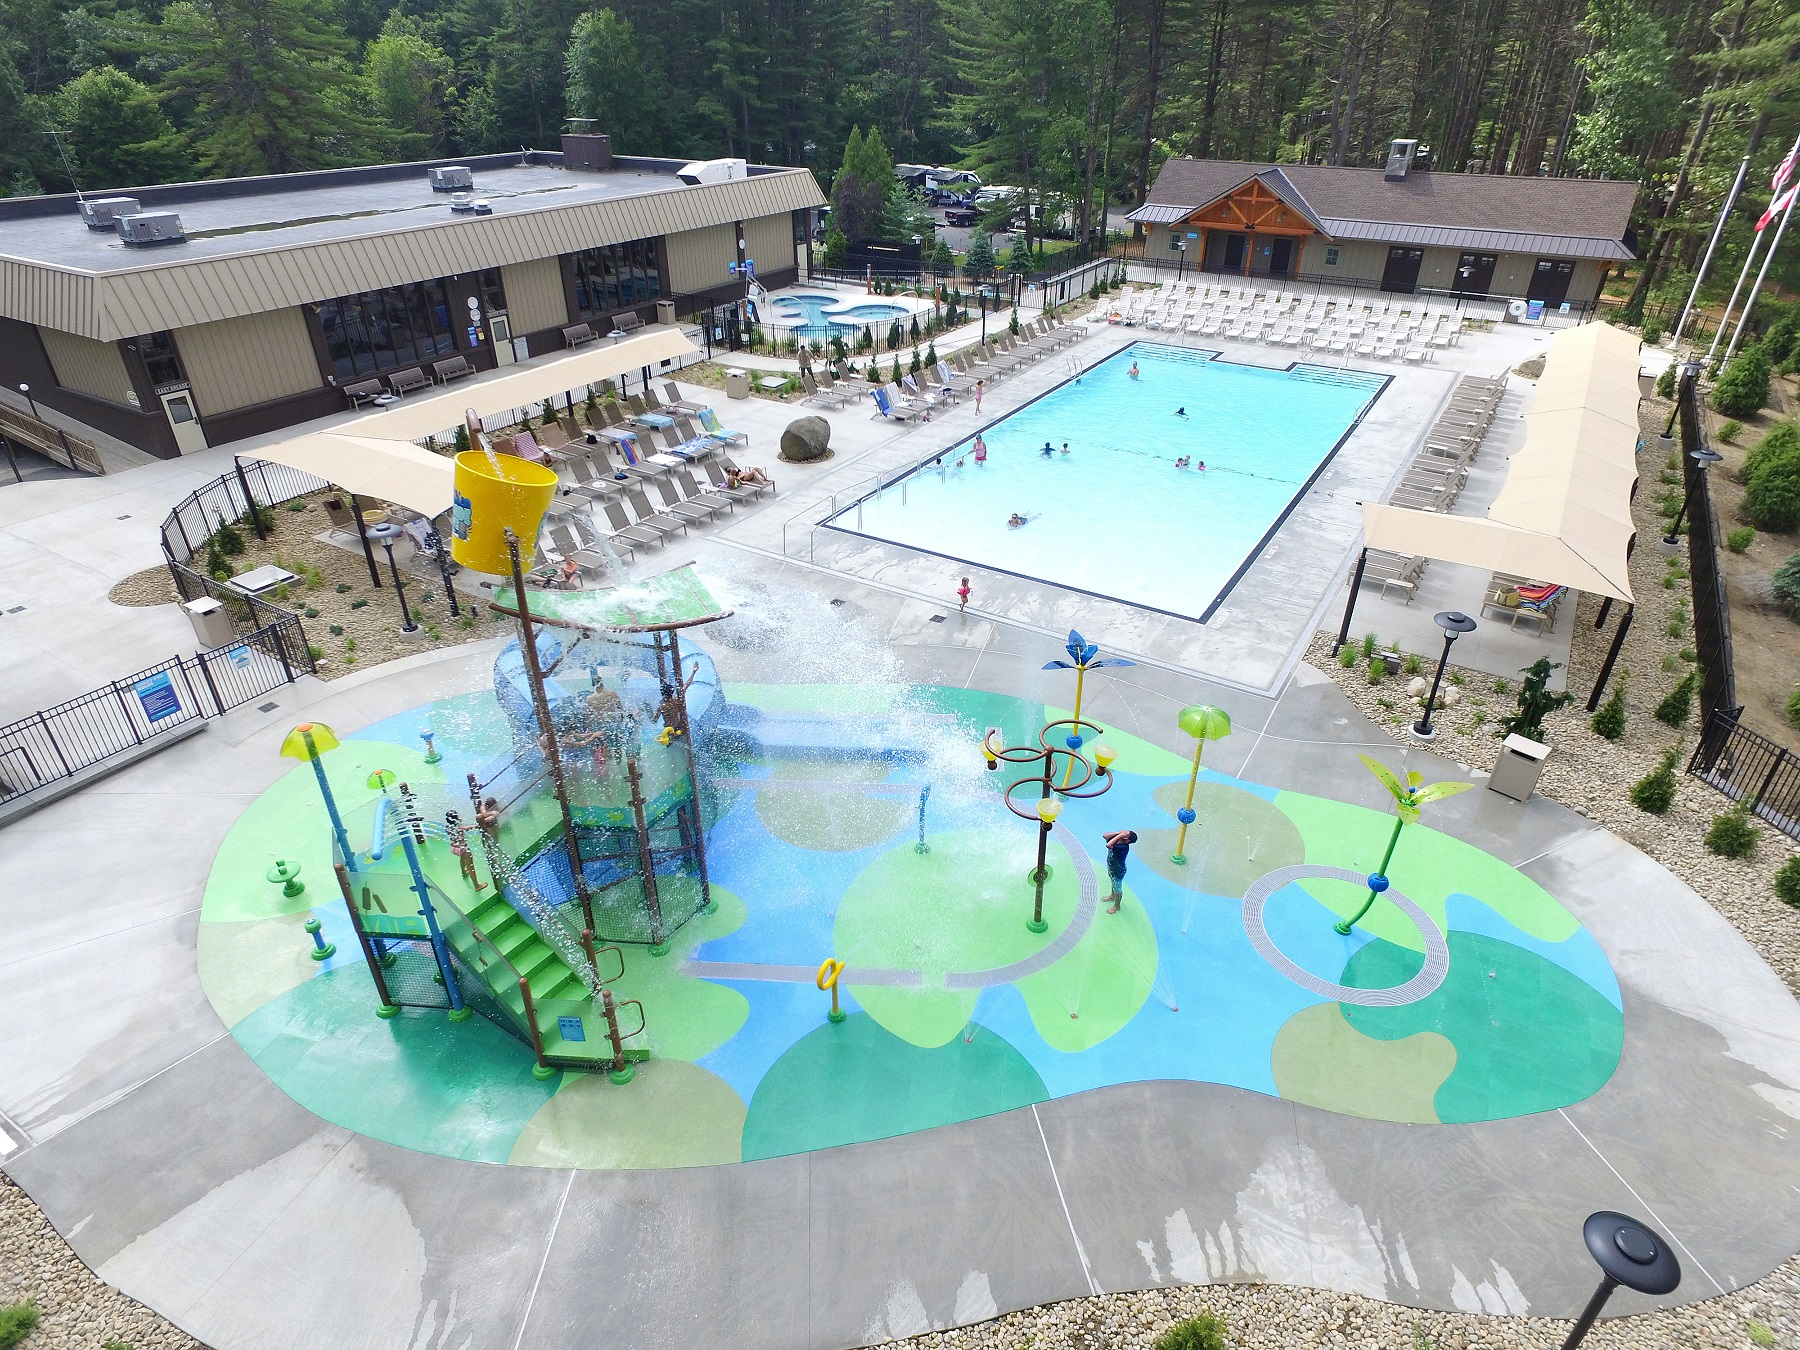 In the foreground the splash pad area is shown with children playing on the equipment. Behind the Splash Pad the zero entry pool is shown with people swimming in it and lounging in the chairs around it. In the far left of the photo the hot tub area is shown.